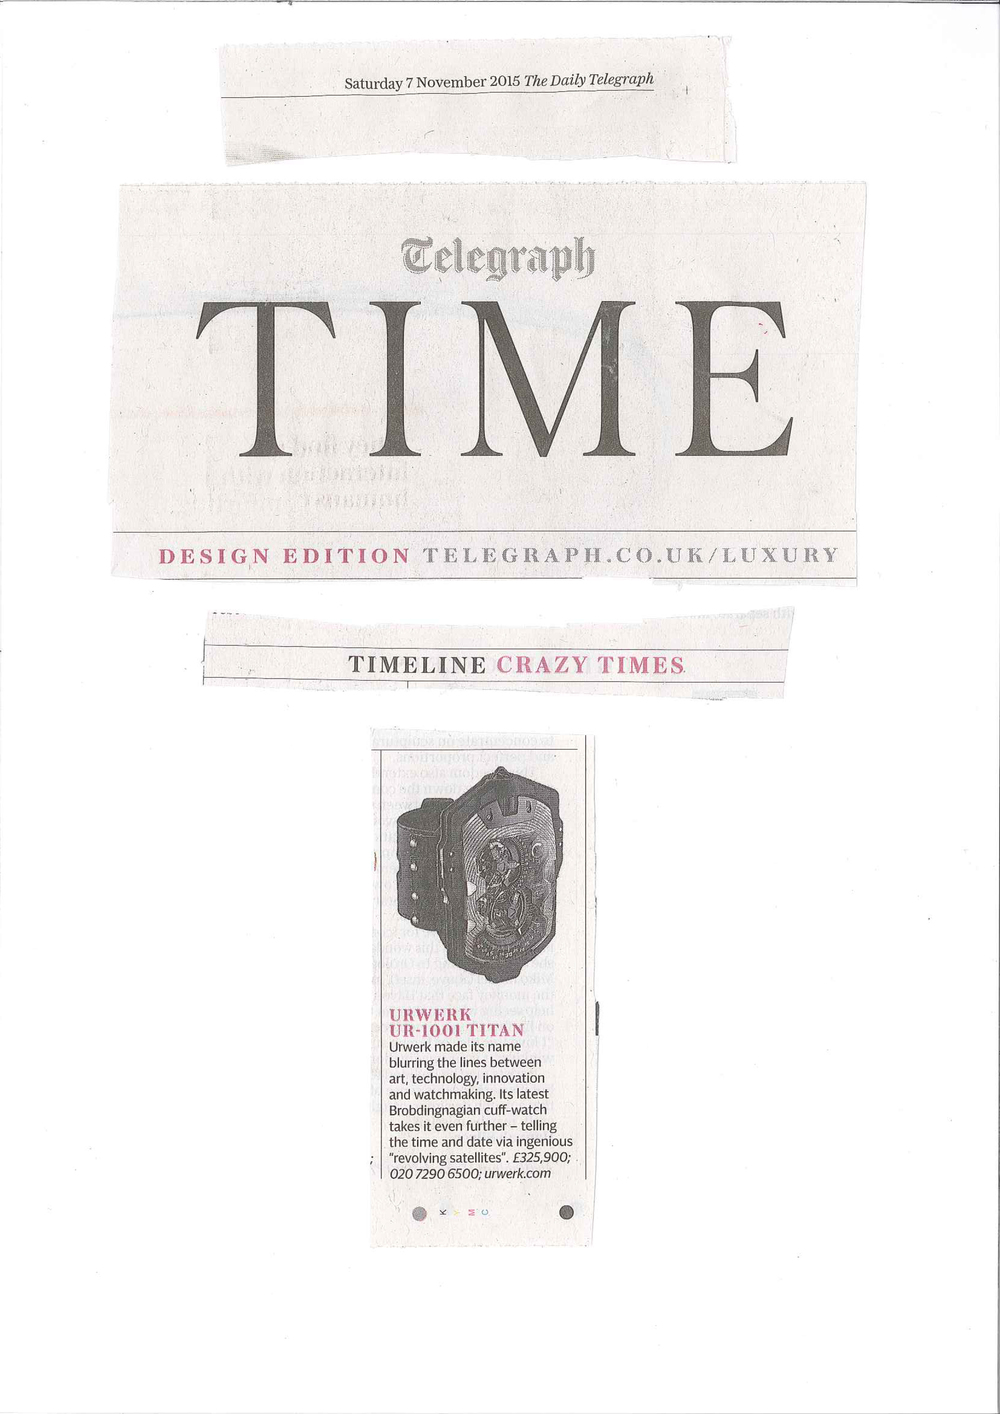 Telegraph Time Nov 15